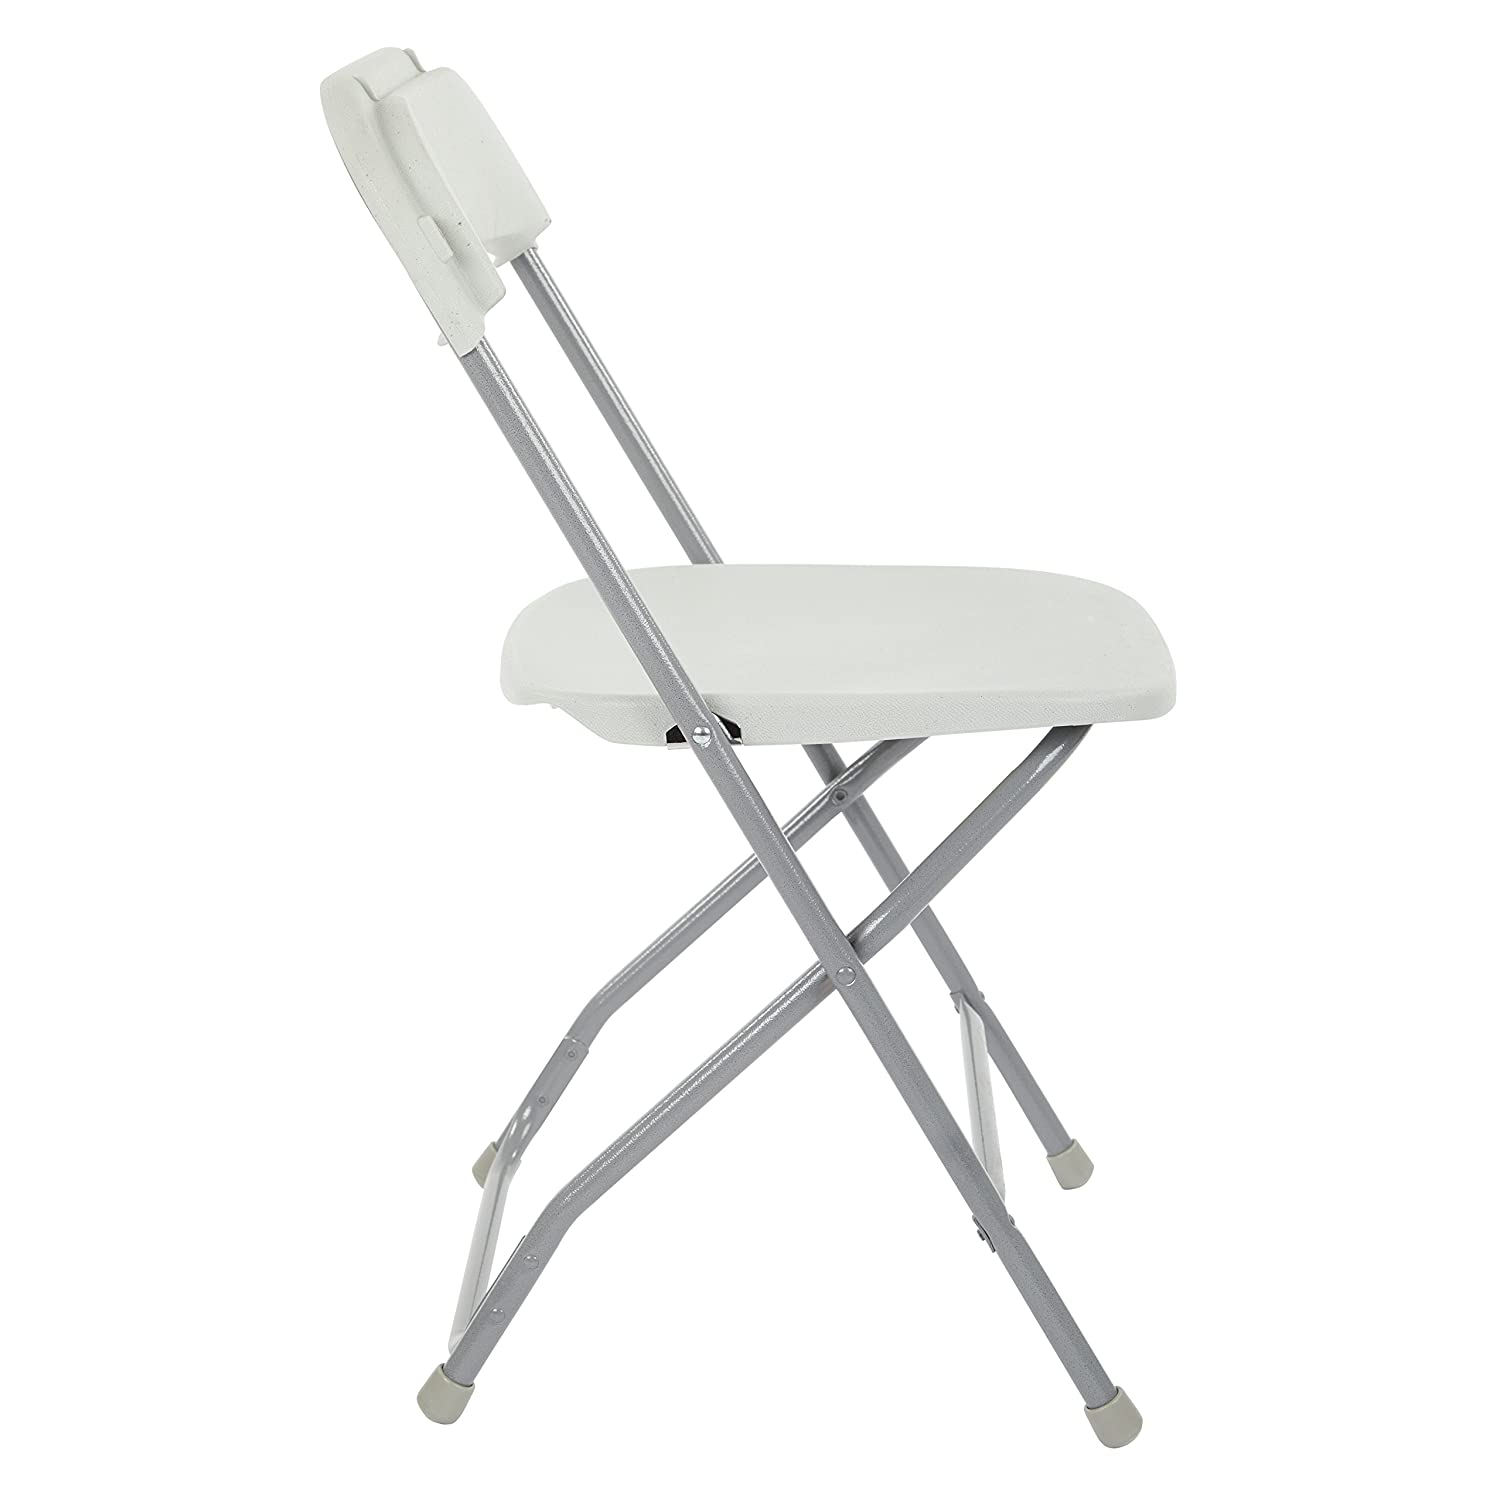 Amazon.com: Office Star - Silla plegable multiusos de resina ...